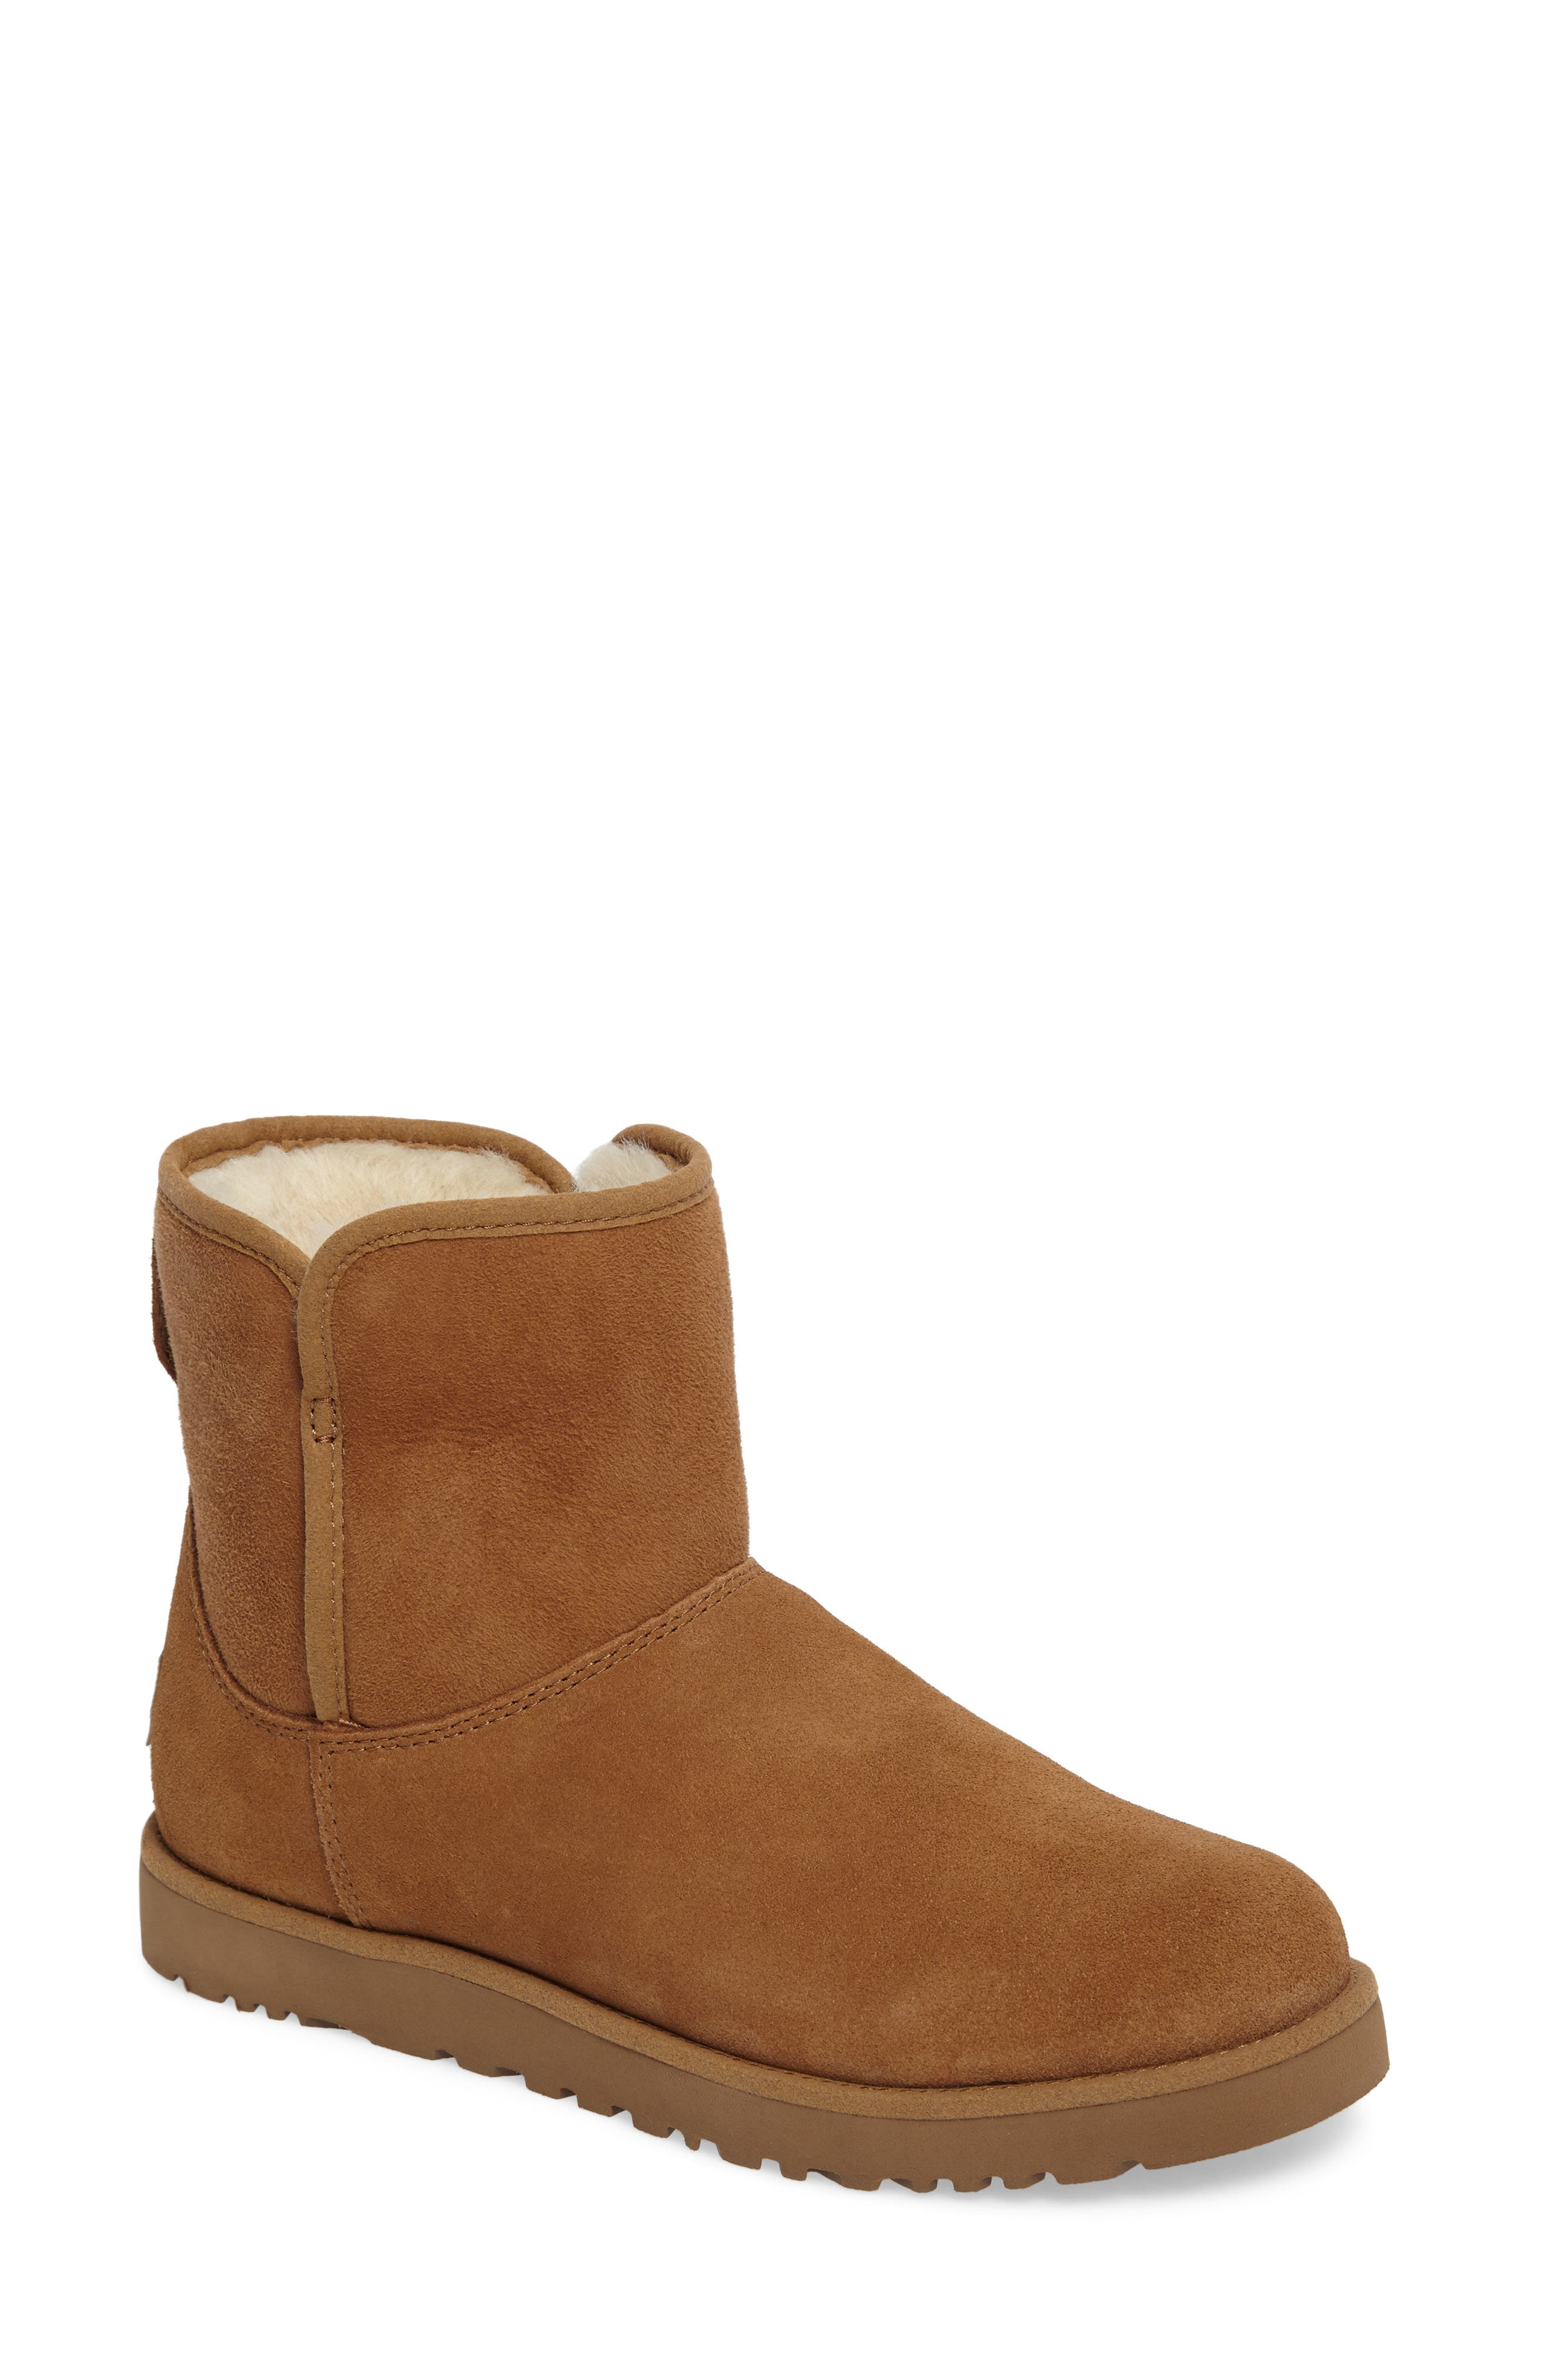 'Cory' Short Boot,                         Main,                         color, Chestnut Suede